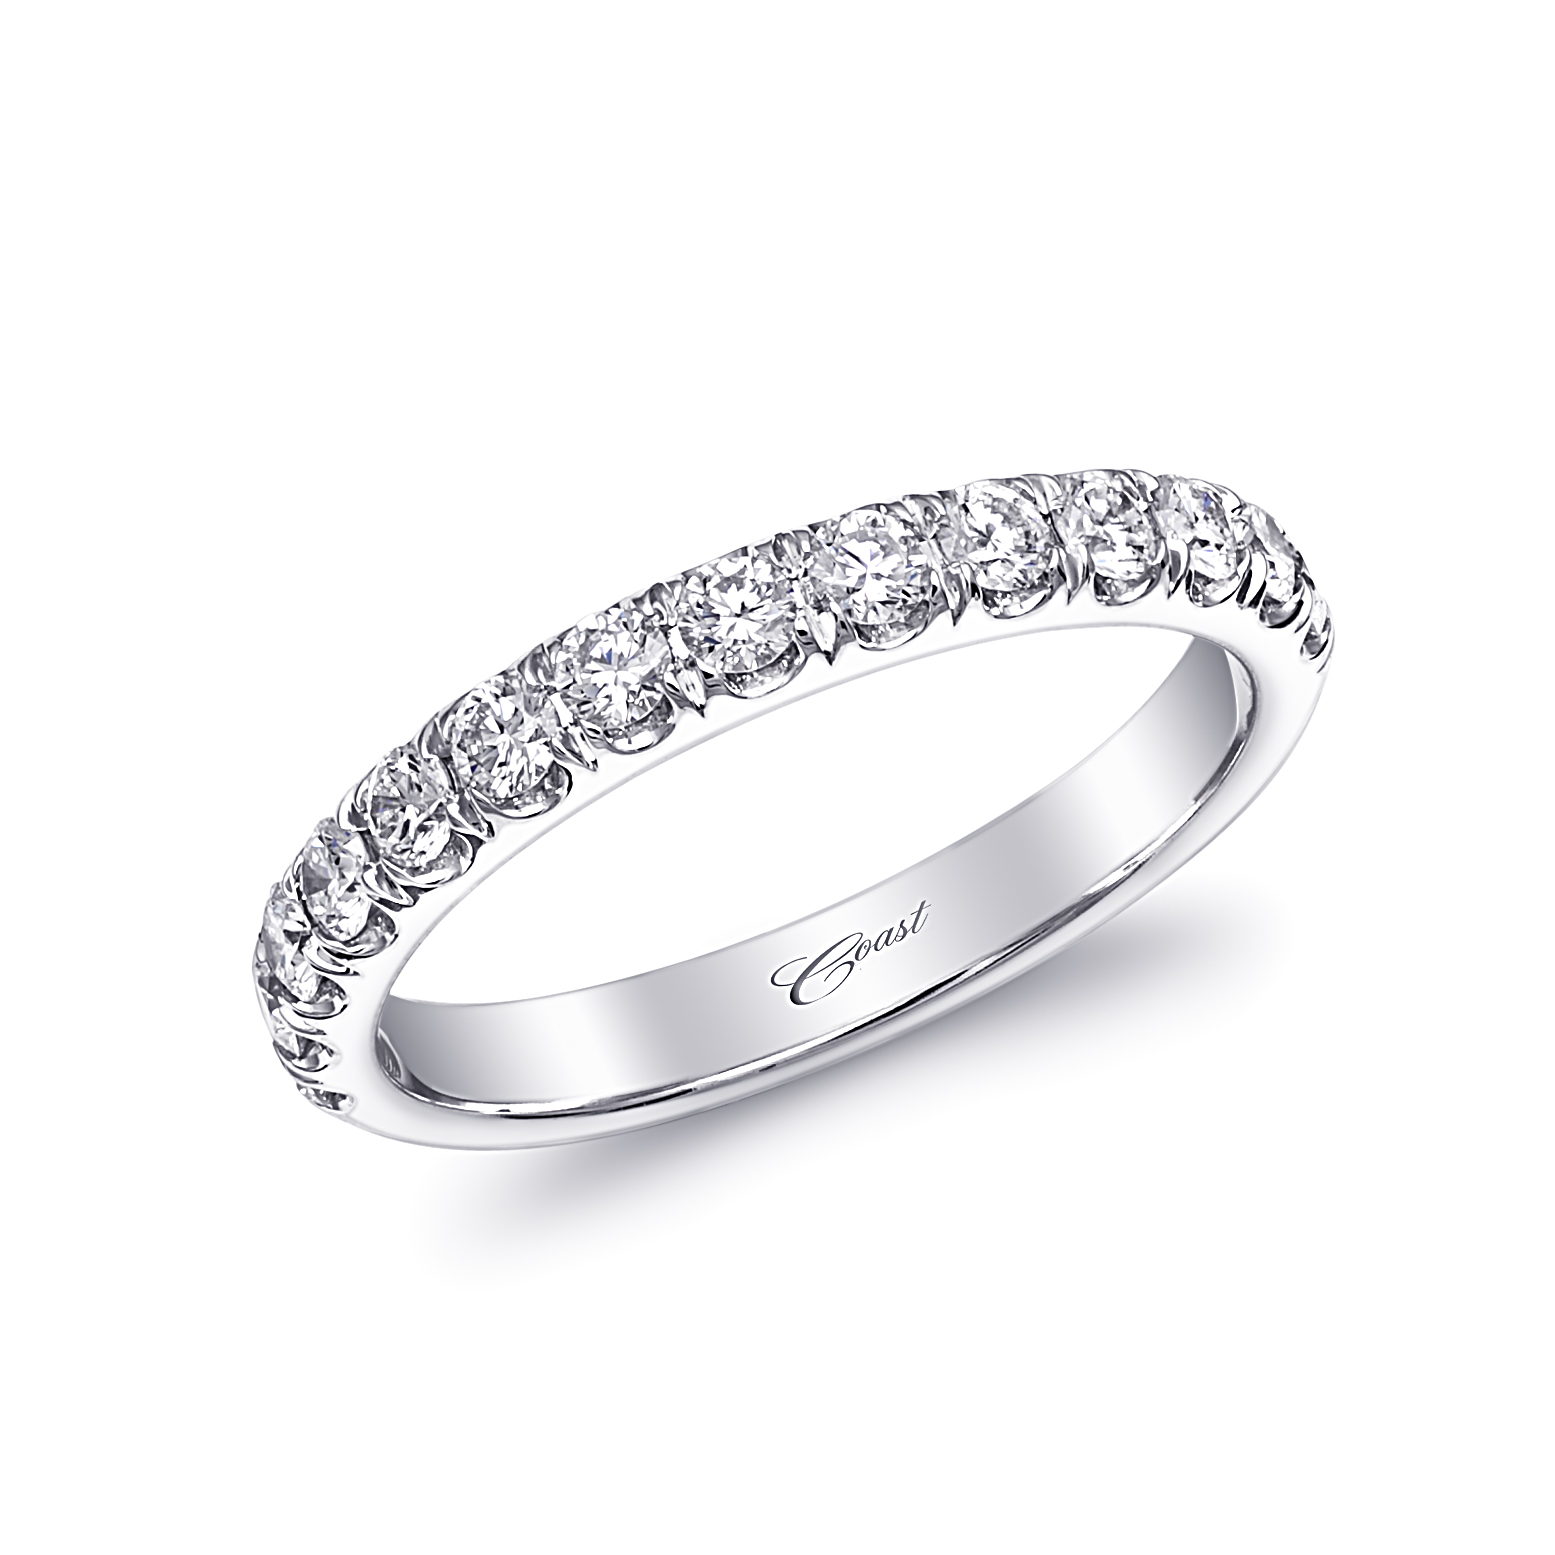 only at band tzefira buy for products plat wedding full diamond claw eternity bands set